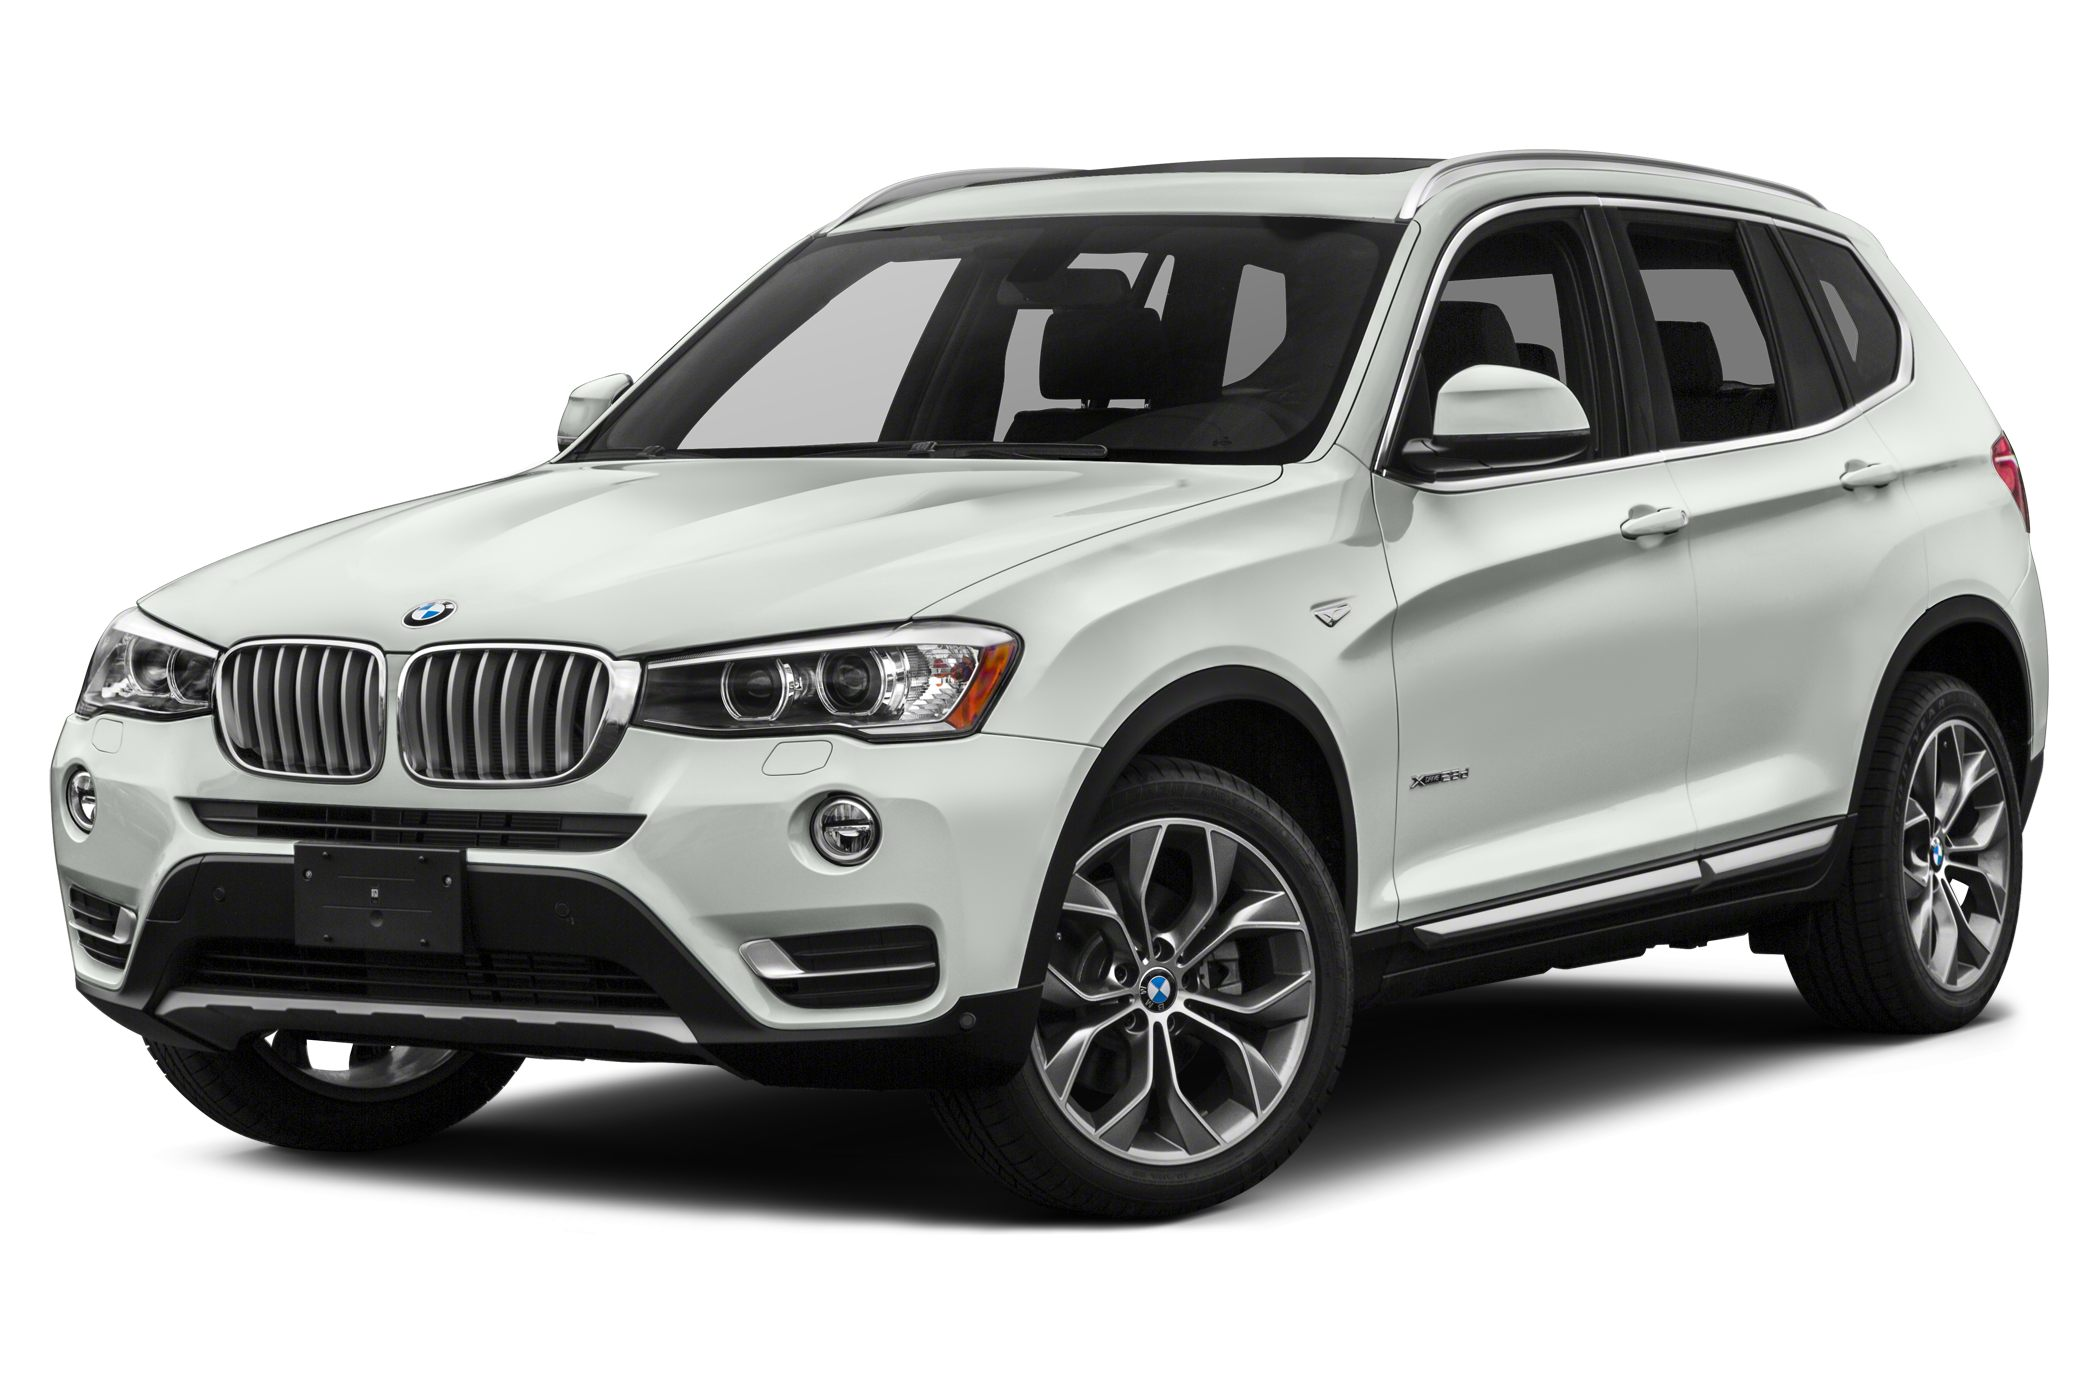 2017 BMW X3 xDrive28i LOW MILEAGE 2017 BMW X3 XDRIVE28iCLEAN CAR FAXONE OWNERLOCALLY OWNED